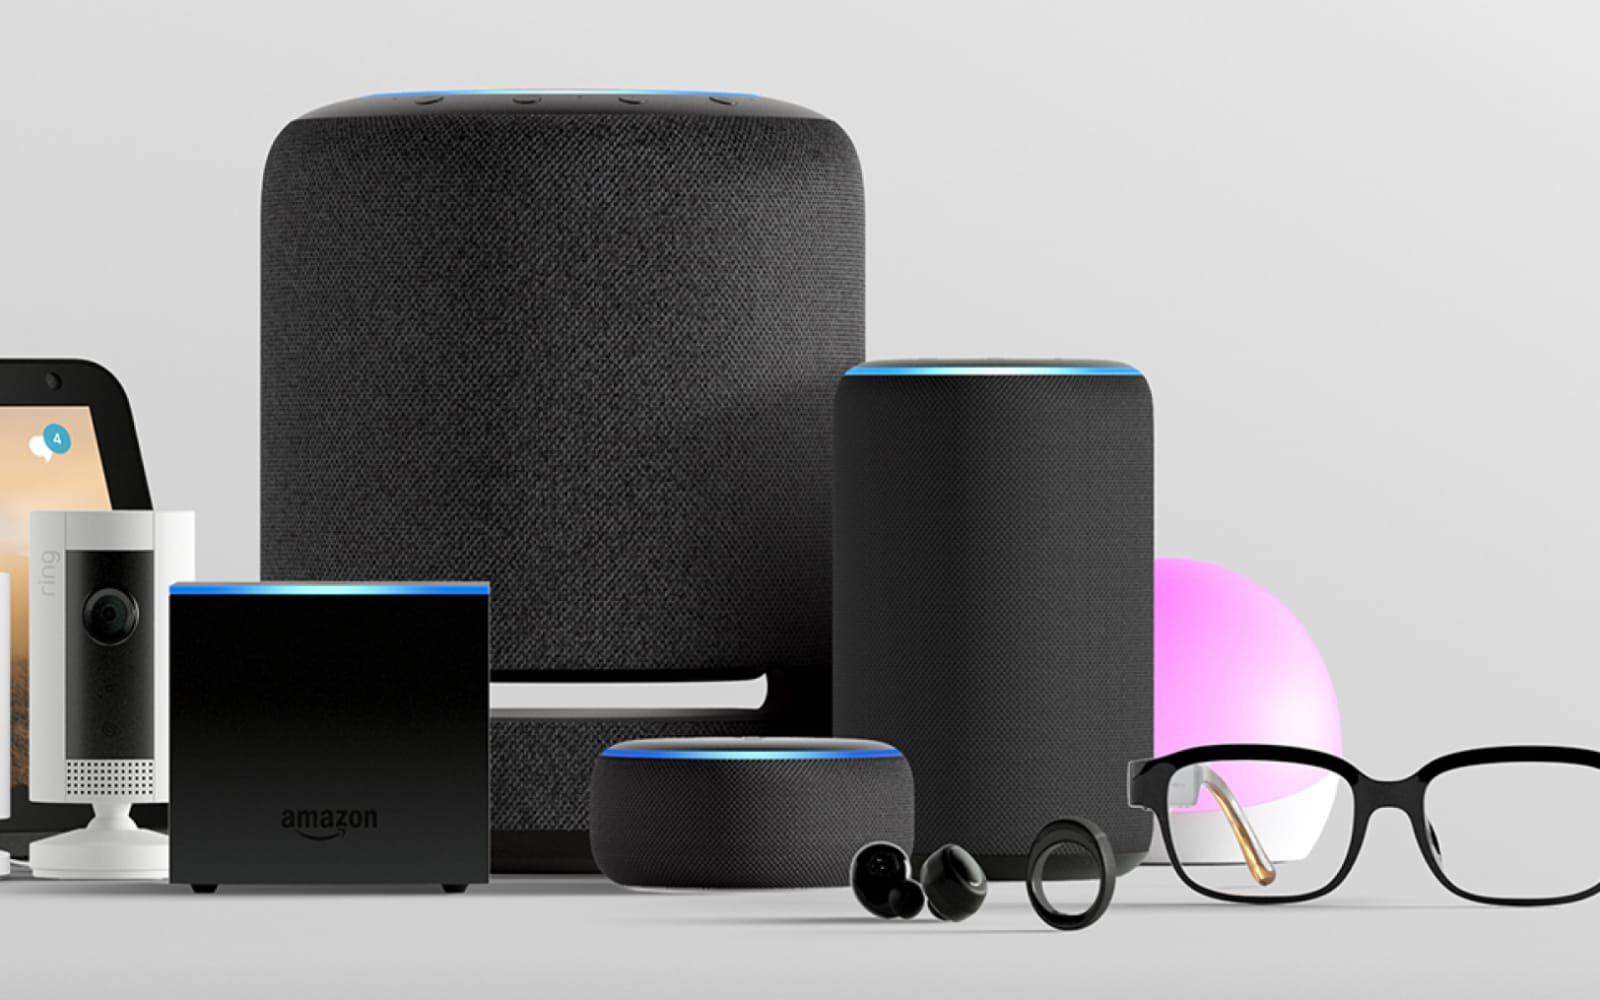 These are all of the Alexa devices Amazon unveiled today